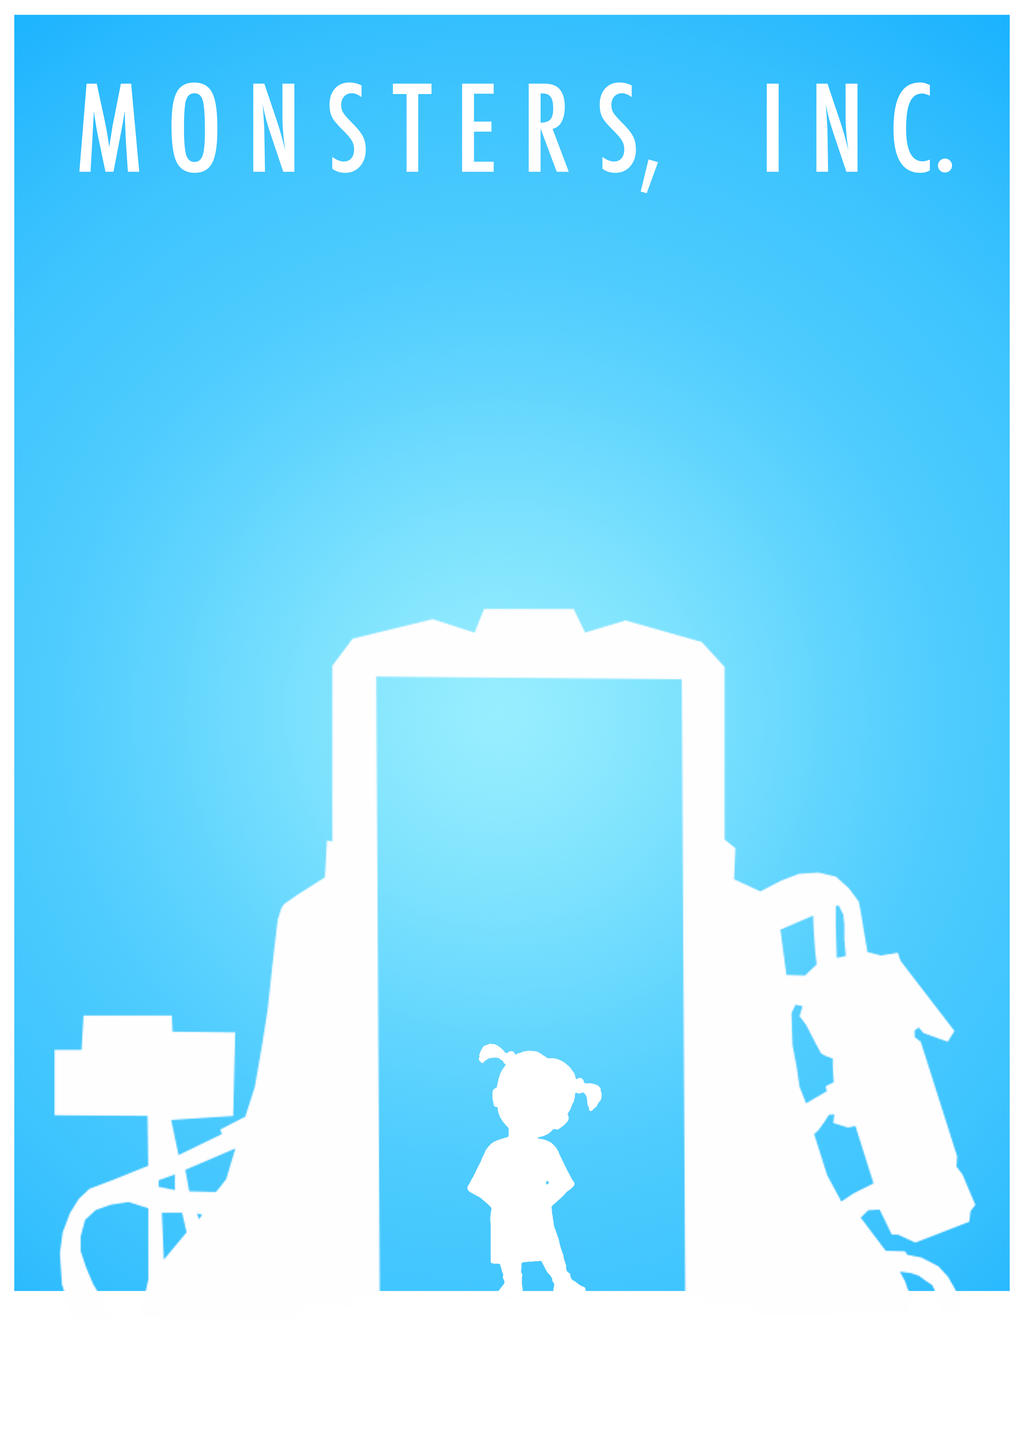 Monsters Inc Minimal Poster By Cw Posters On Deviantart